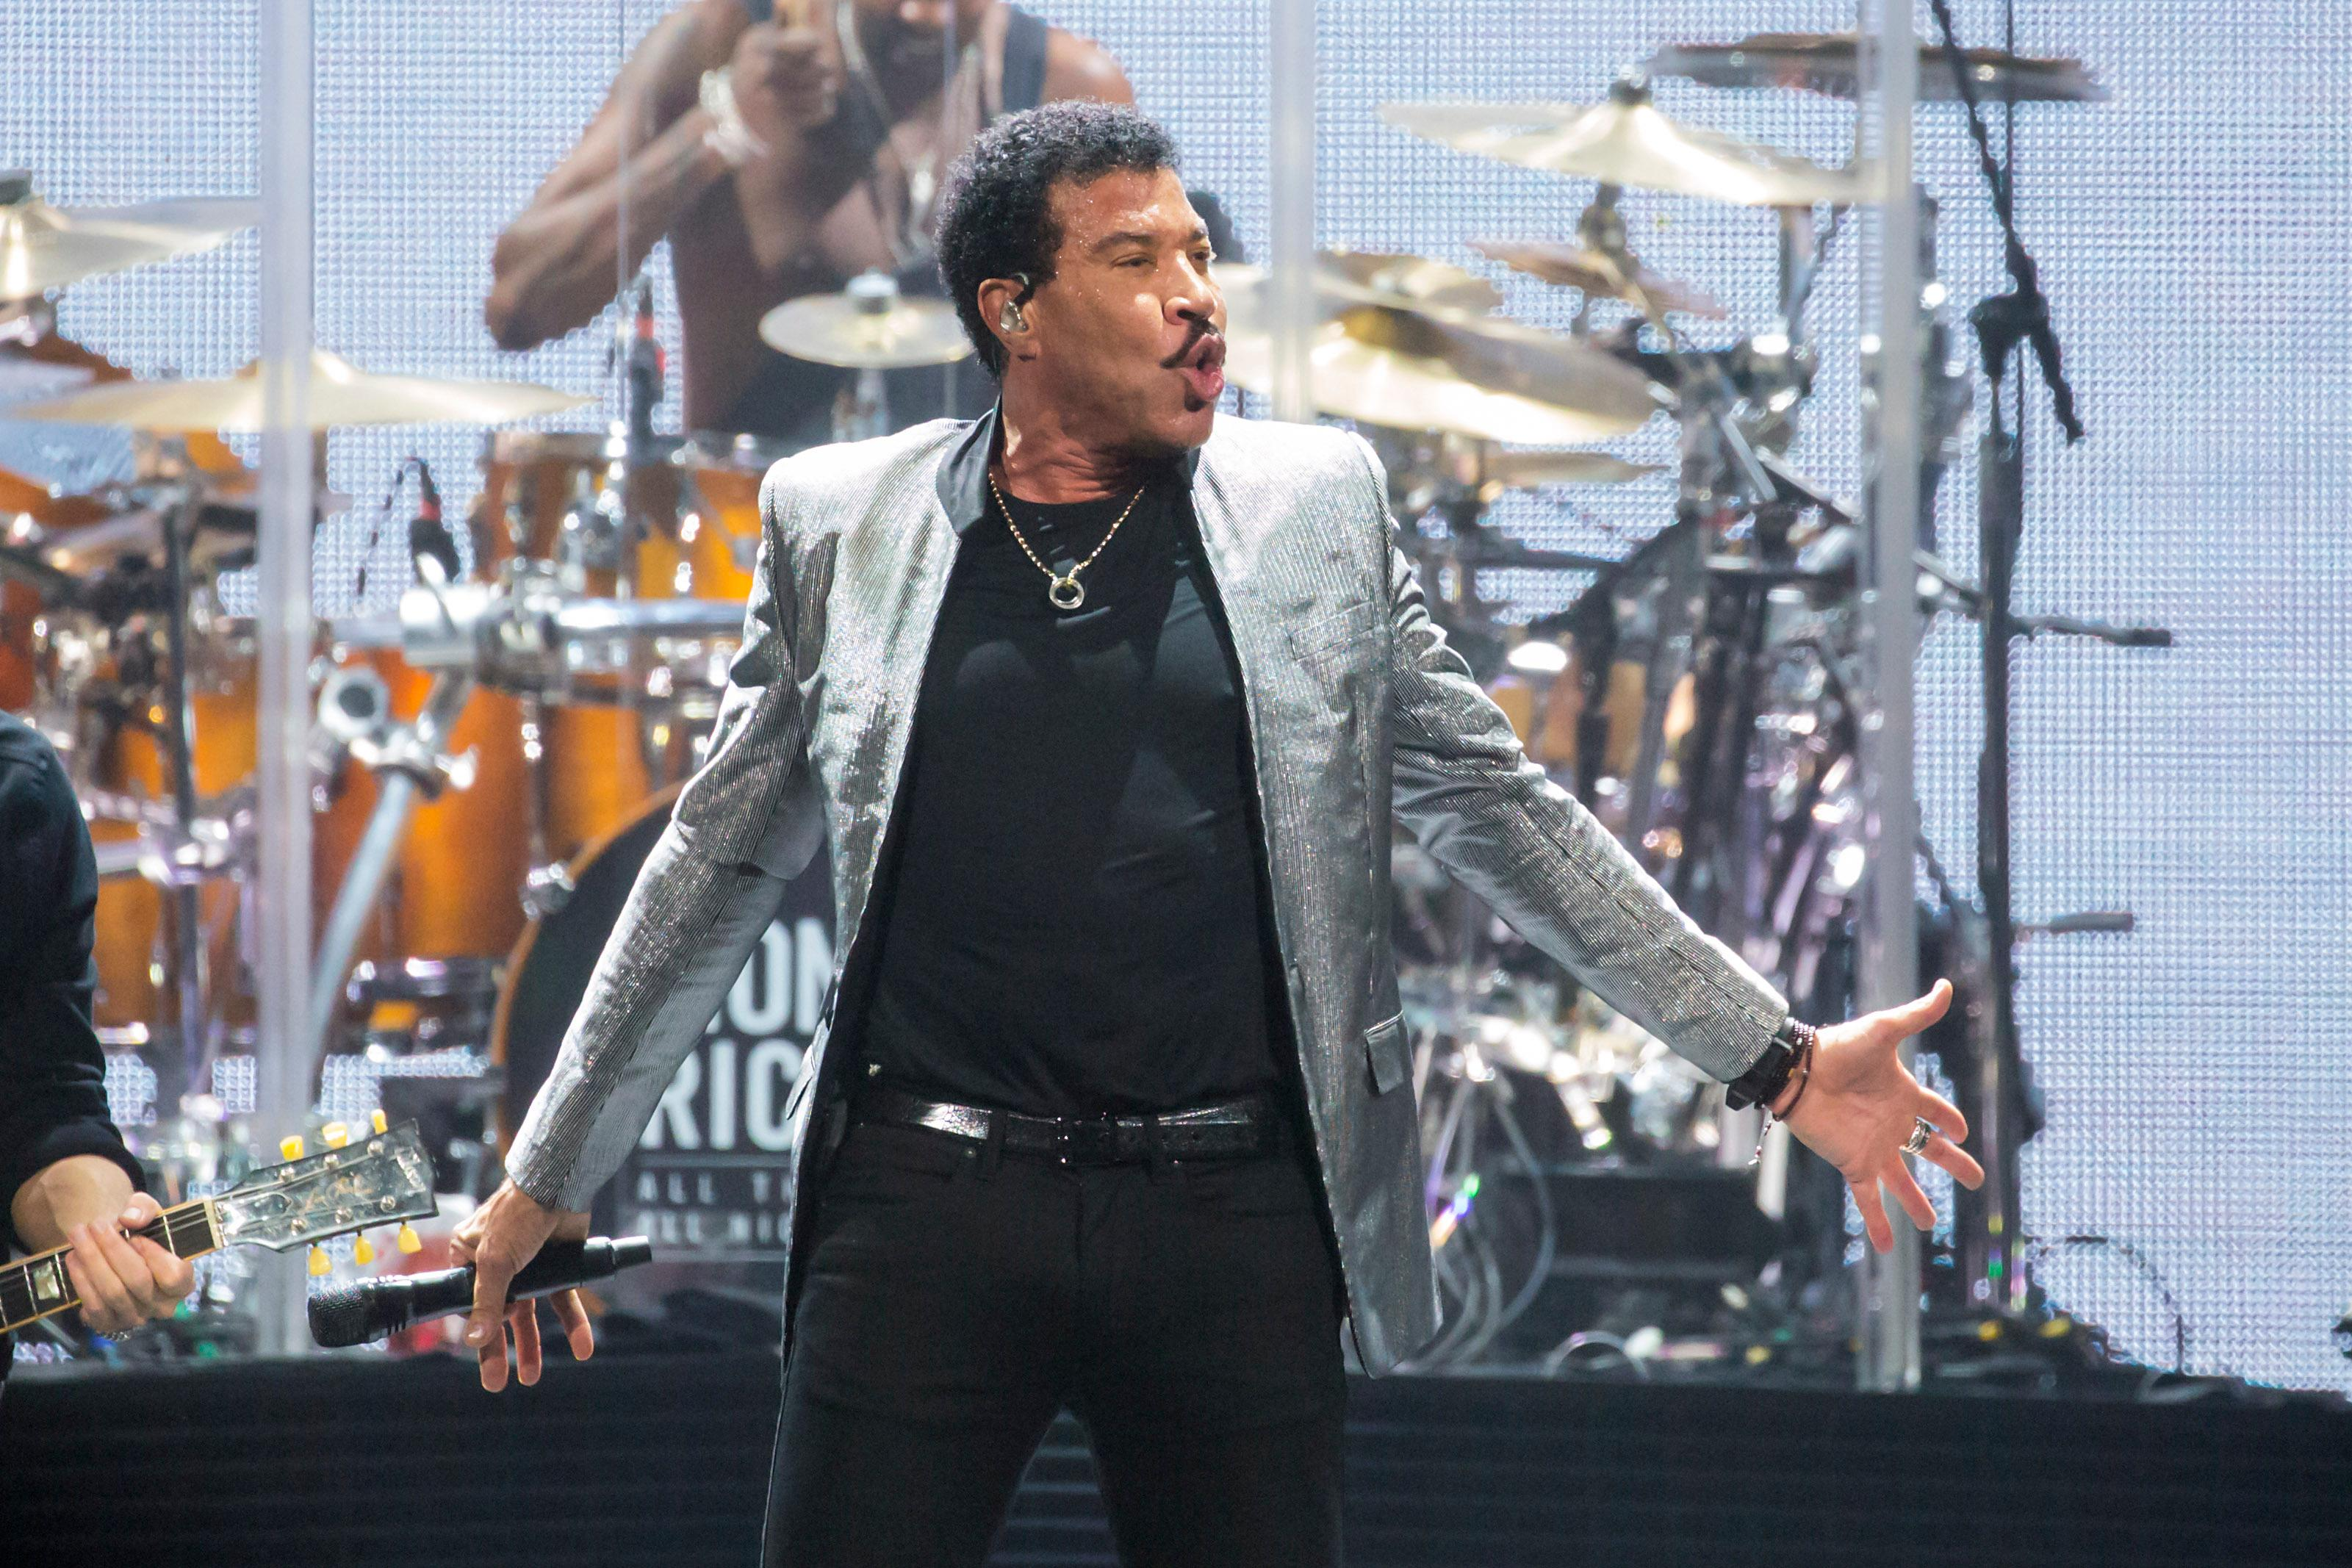 Lionel Richie plays all his classics for a packed KeyArena after his special guest Mariah Carey performed during his ALL THE HITS tour. (Sy Bean / Seattle Refined)